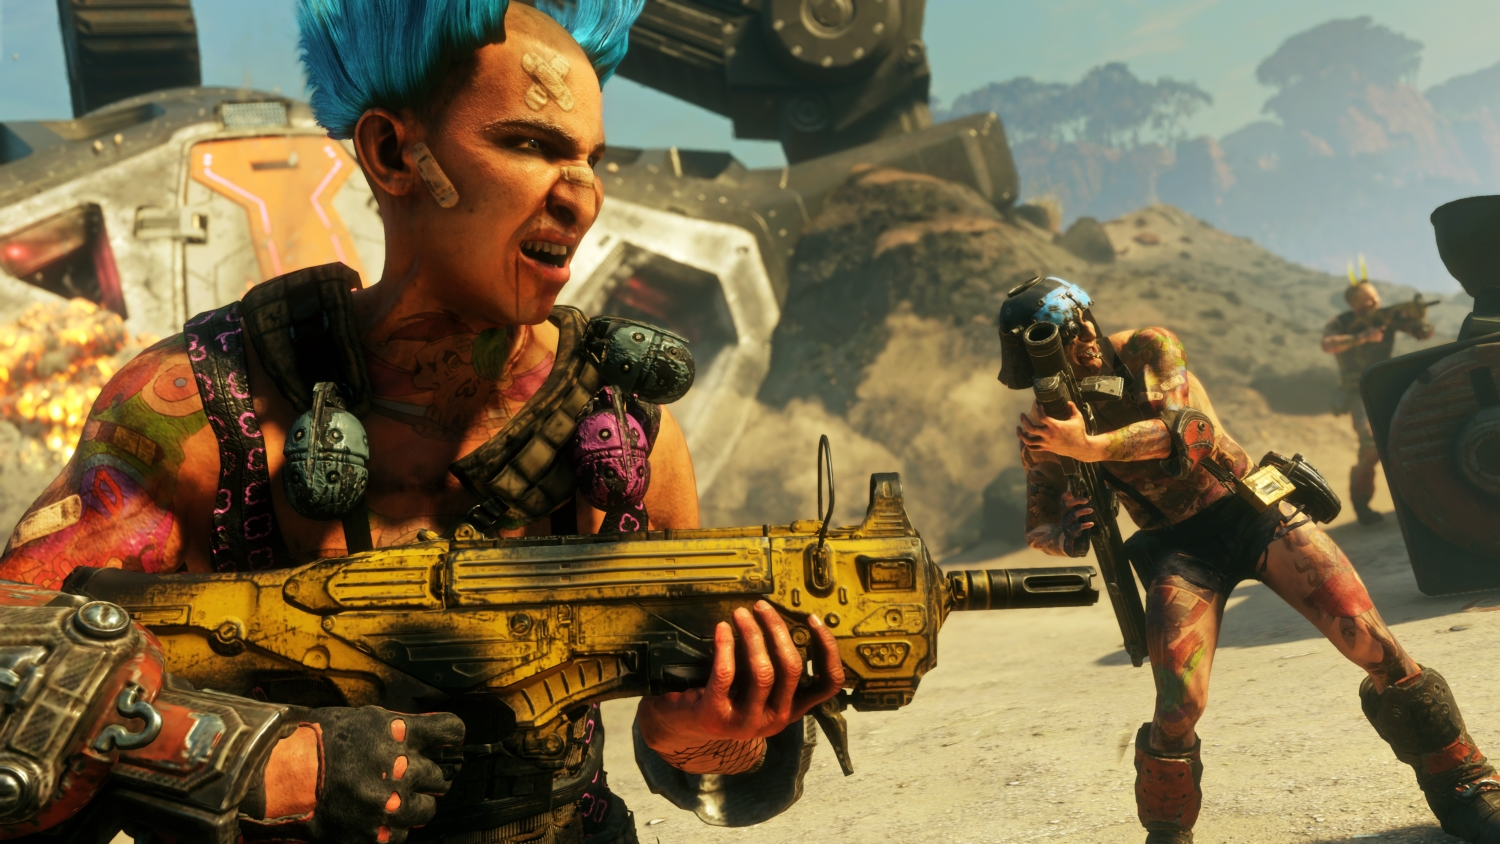 Games Inbox: Rage 2 first impressions, Detective Pikachu record breaker, and Final Fantasy VII